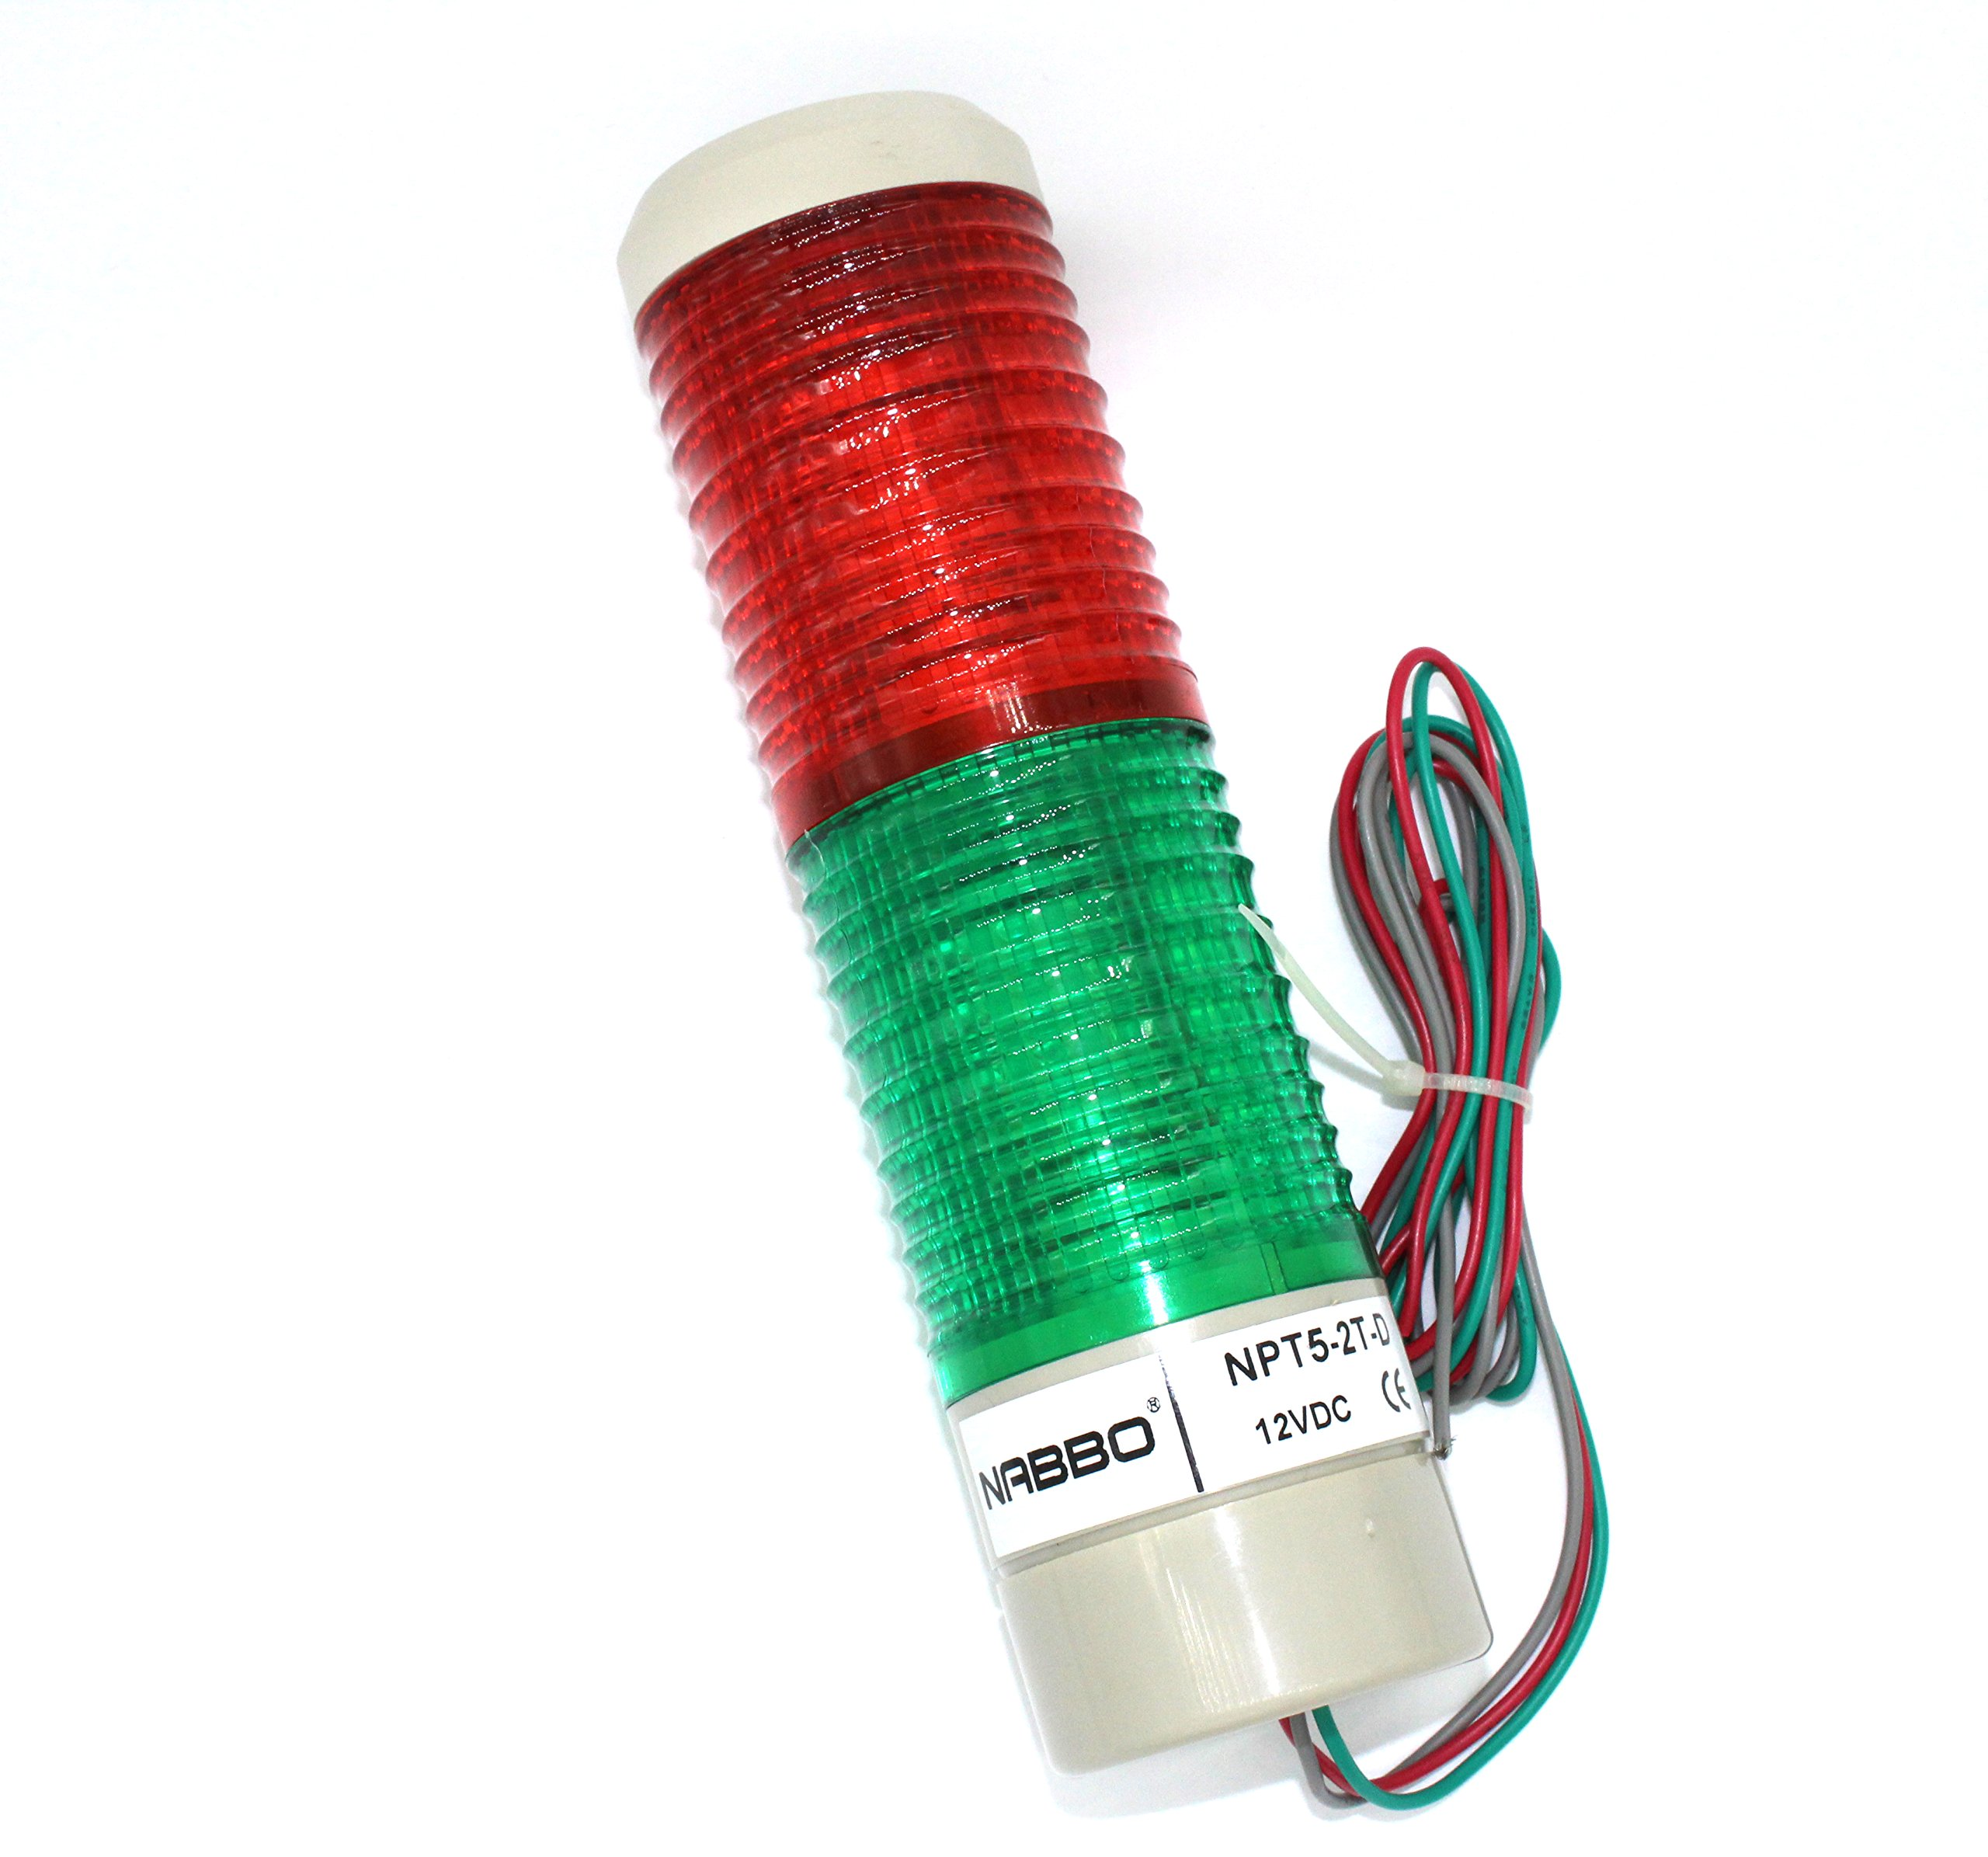 Industrial Signal Light Column LED Alarm Round Tower Light Indicator Warning light Red Green DC 12V Steady On